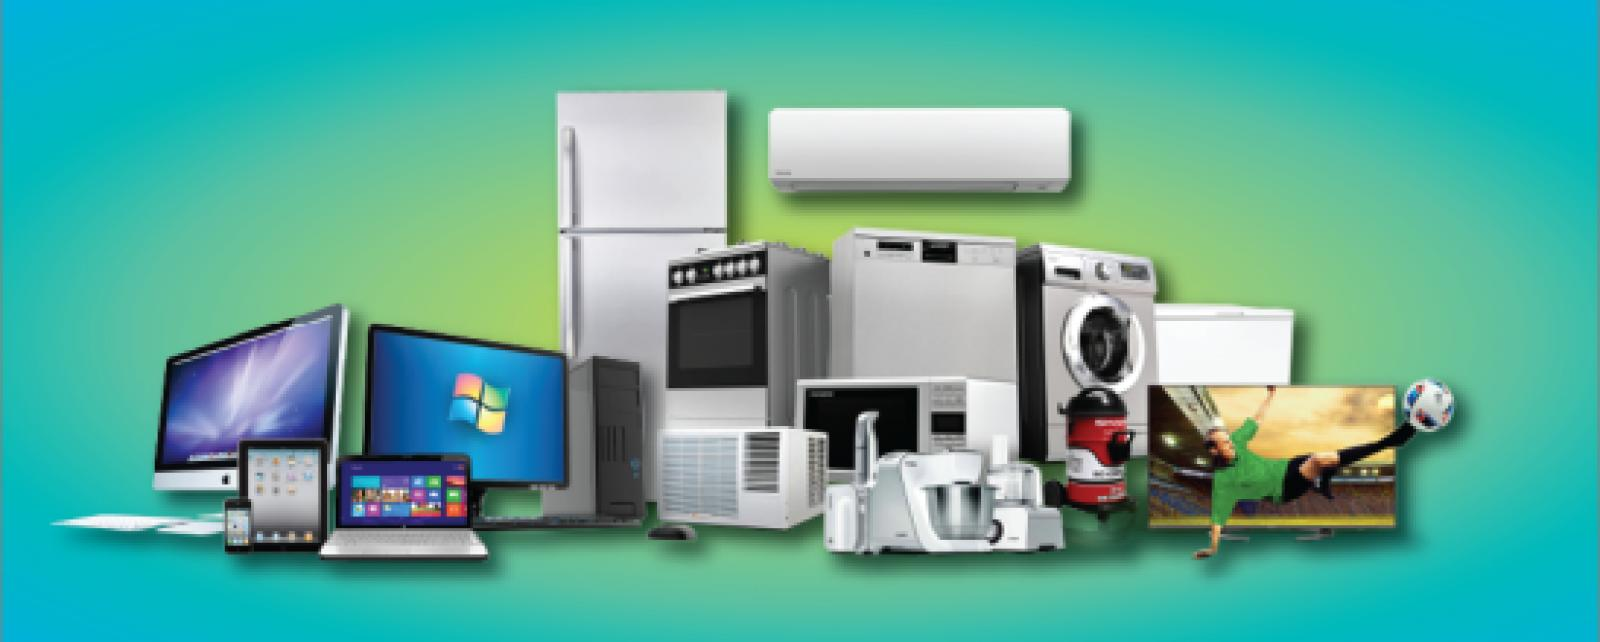 Top Deals | Get upto 60% OFF on Electronics and Accessories at Amazon